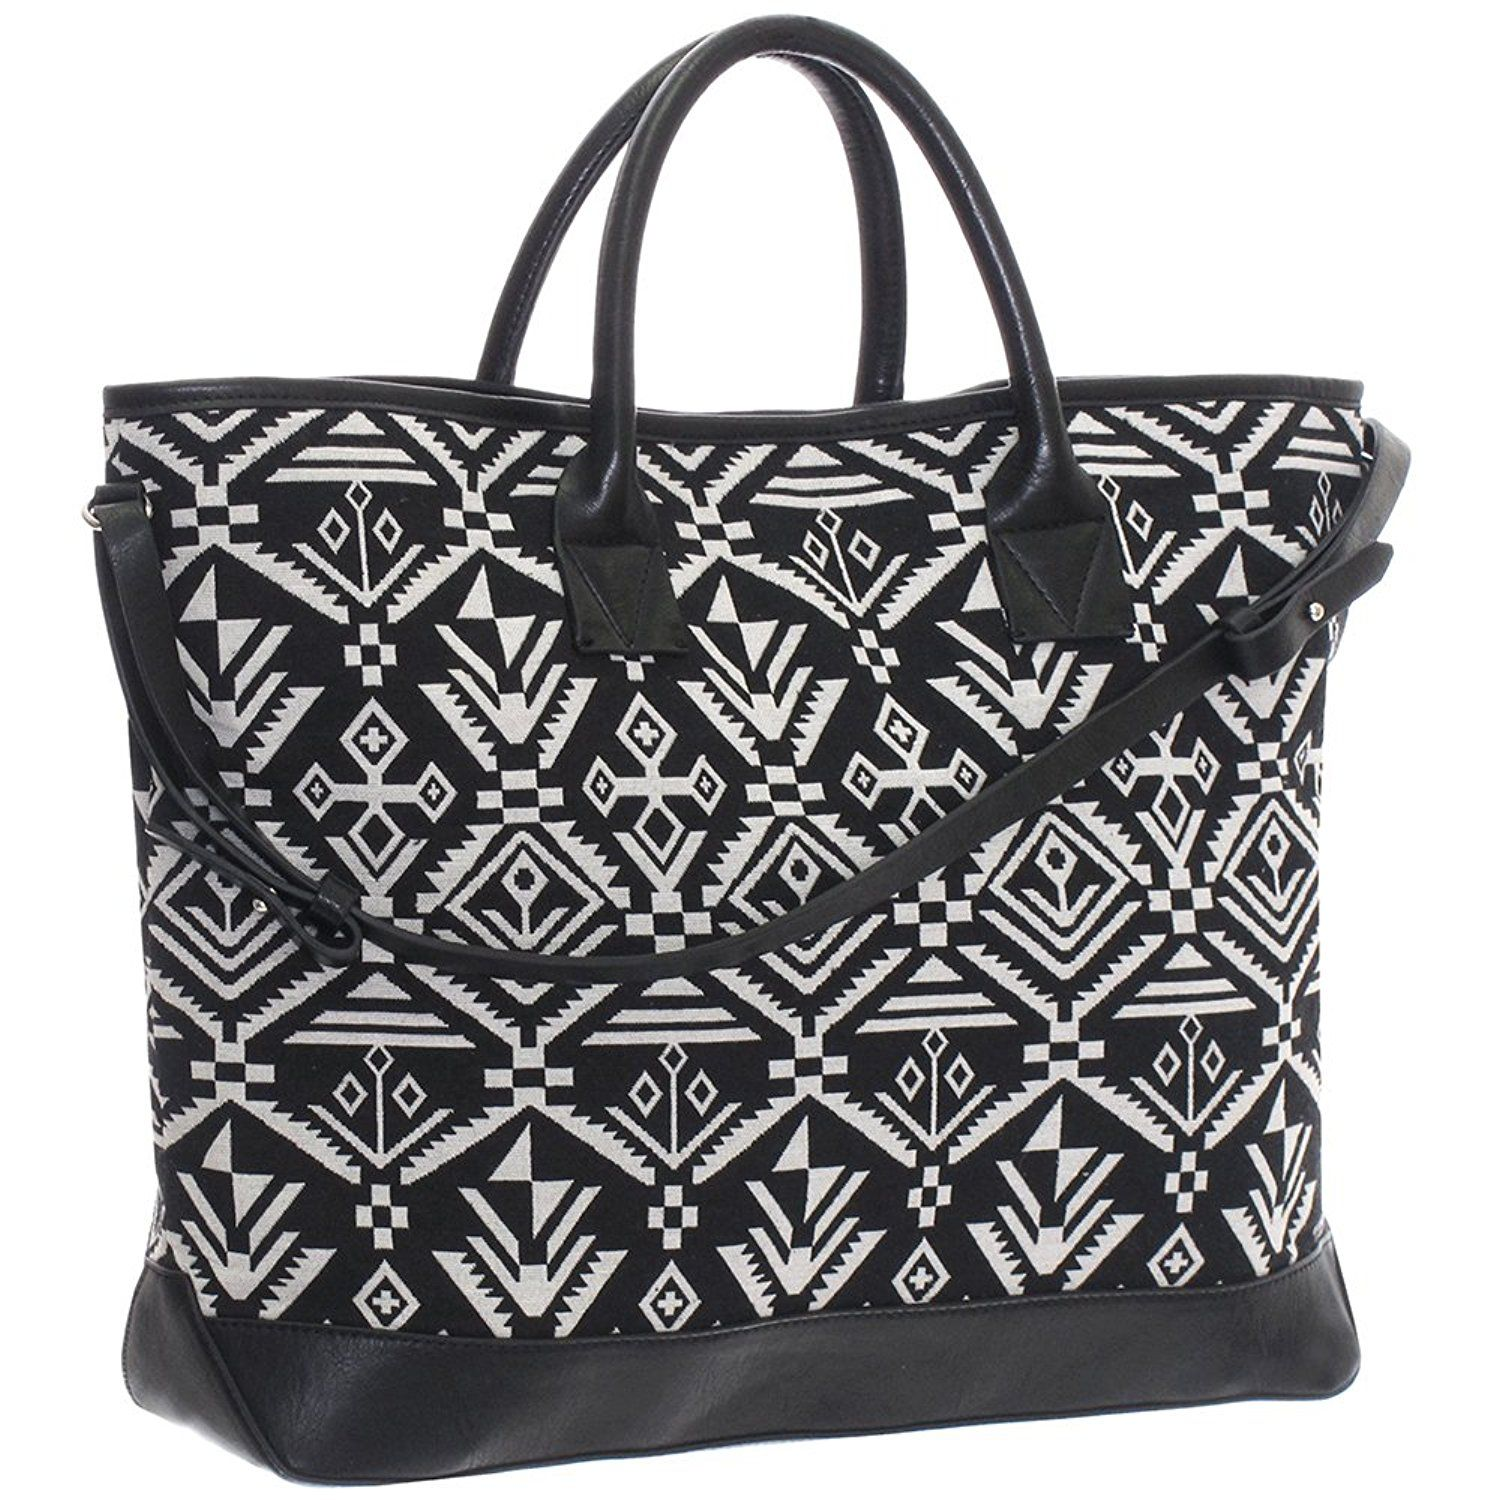 Fabric tote bag with short and long handles to view